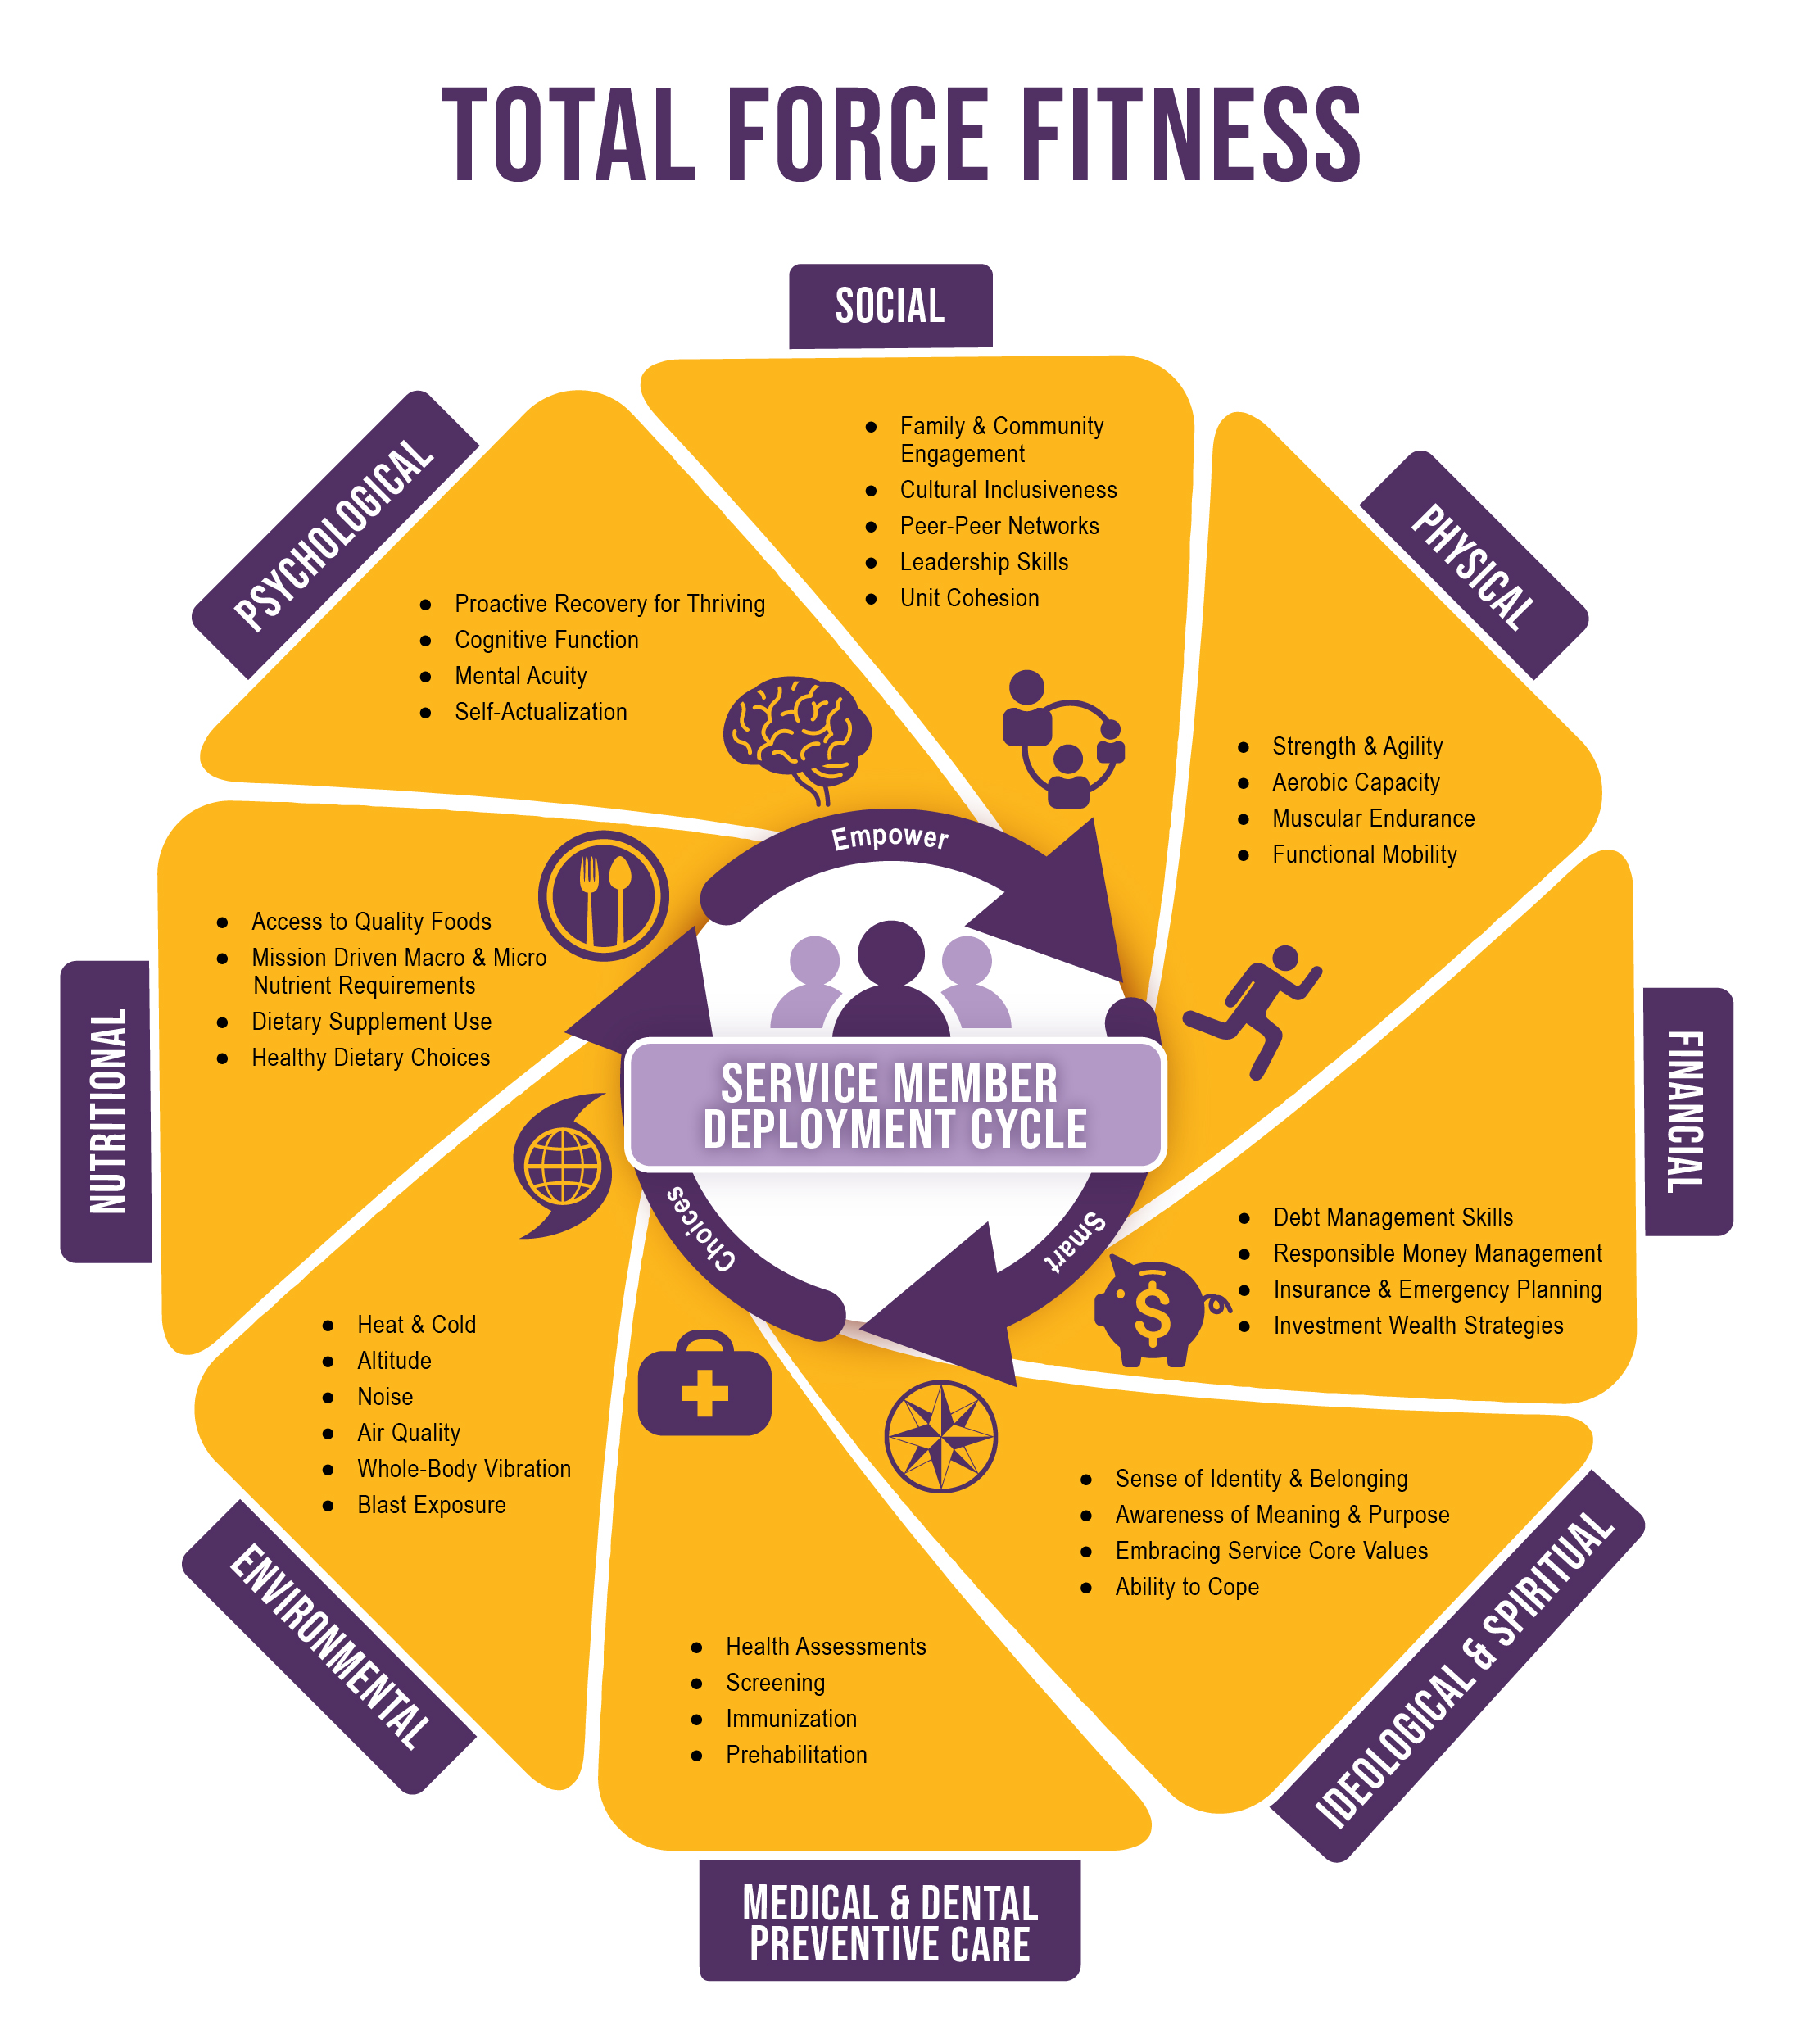 The Total Force Fitness framework consists of life domains that are key to health and performance. Each domain contains information that empowers Military Service Members to make smart choices about their well-being throughout the deployment cycle. Social domain includes family and community engagement, cultural inclusiveness, peer-to-peer networks, leadership skills, and unit cohesion. Physical domain consists of strength and agility, aerobic capacity, muscular endurance, and functional mobility. Financial domain consists of debt management skills, responsible money management, insurance and emergency planning, and investment wealth strategies. Ideological & Spiritual domain includes sense of identity and belonging, awareness of meaning and purpose, embracing service core values, and ability to cope. Medical & Dental Preventive Care domain consists of health assessments, screening, immunization, and prehabilitation. Environmental domain includes heat and cold, altitude, noise, air quality, whole-body vibration, and blast exposure. Nutritional domain consists of access to quality foods, mission-driven macro and micro nutrient requirements, dietary supplement use, and healthy dietary choices. Psychological domain includes proactive recovery for thriving, cognitive function, mental acuity, and self-actualization.